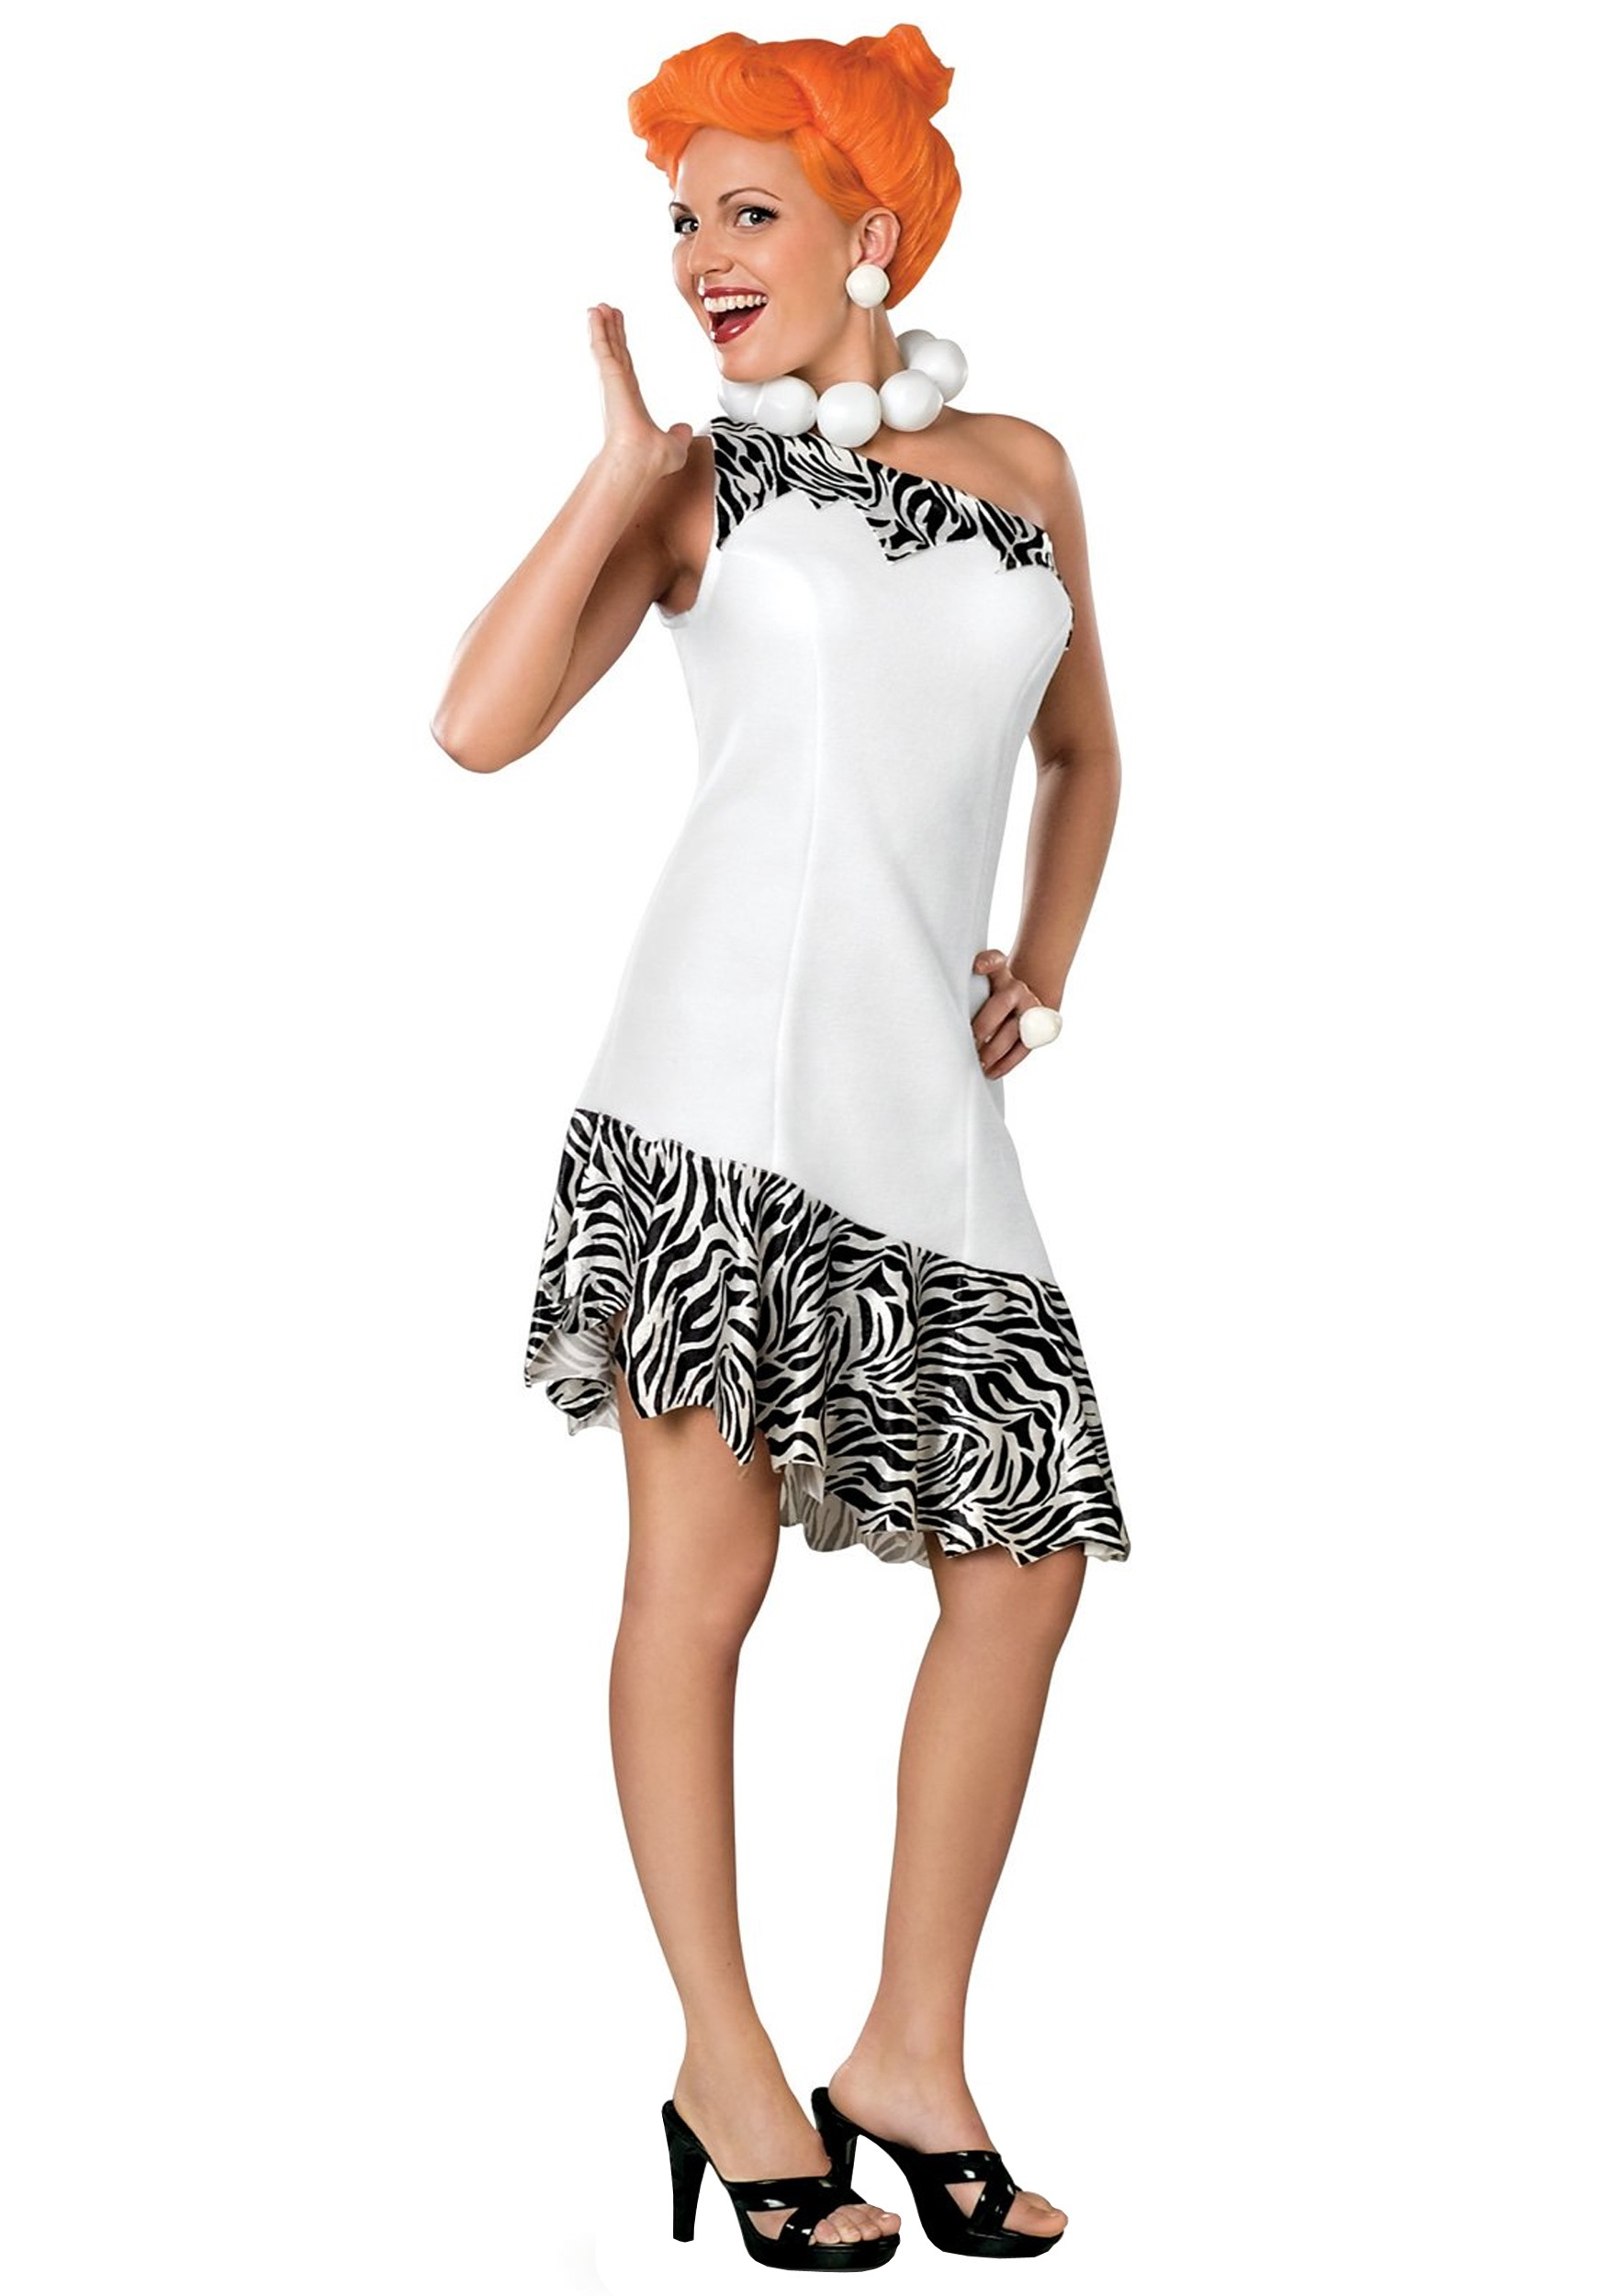 Plus Size Wilma Costume  sc 1 st  Halloween Costume & Plus Size Wilma Costume - Adult Wilma Flintstones Halloween Costumes